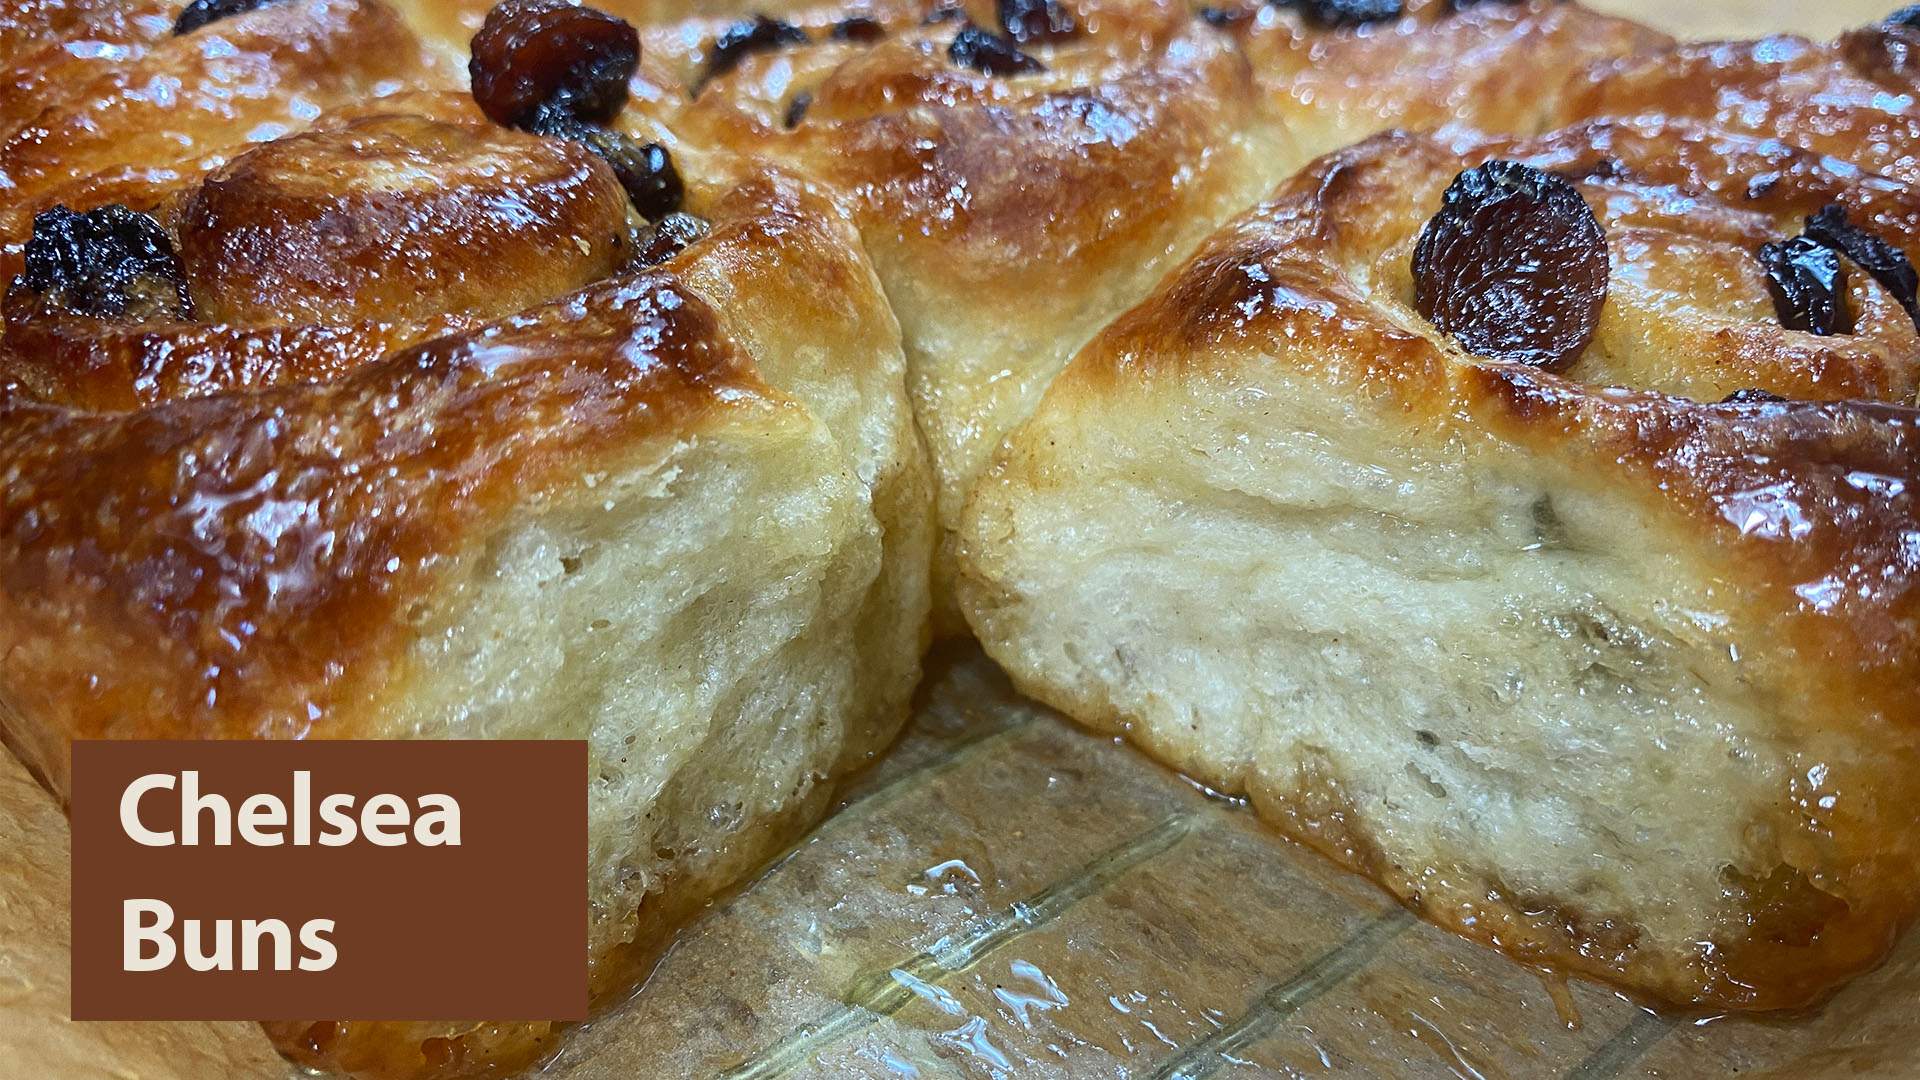 Chelsea buns recipe uk